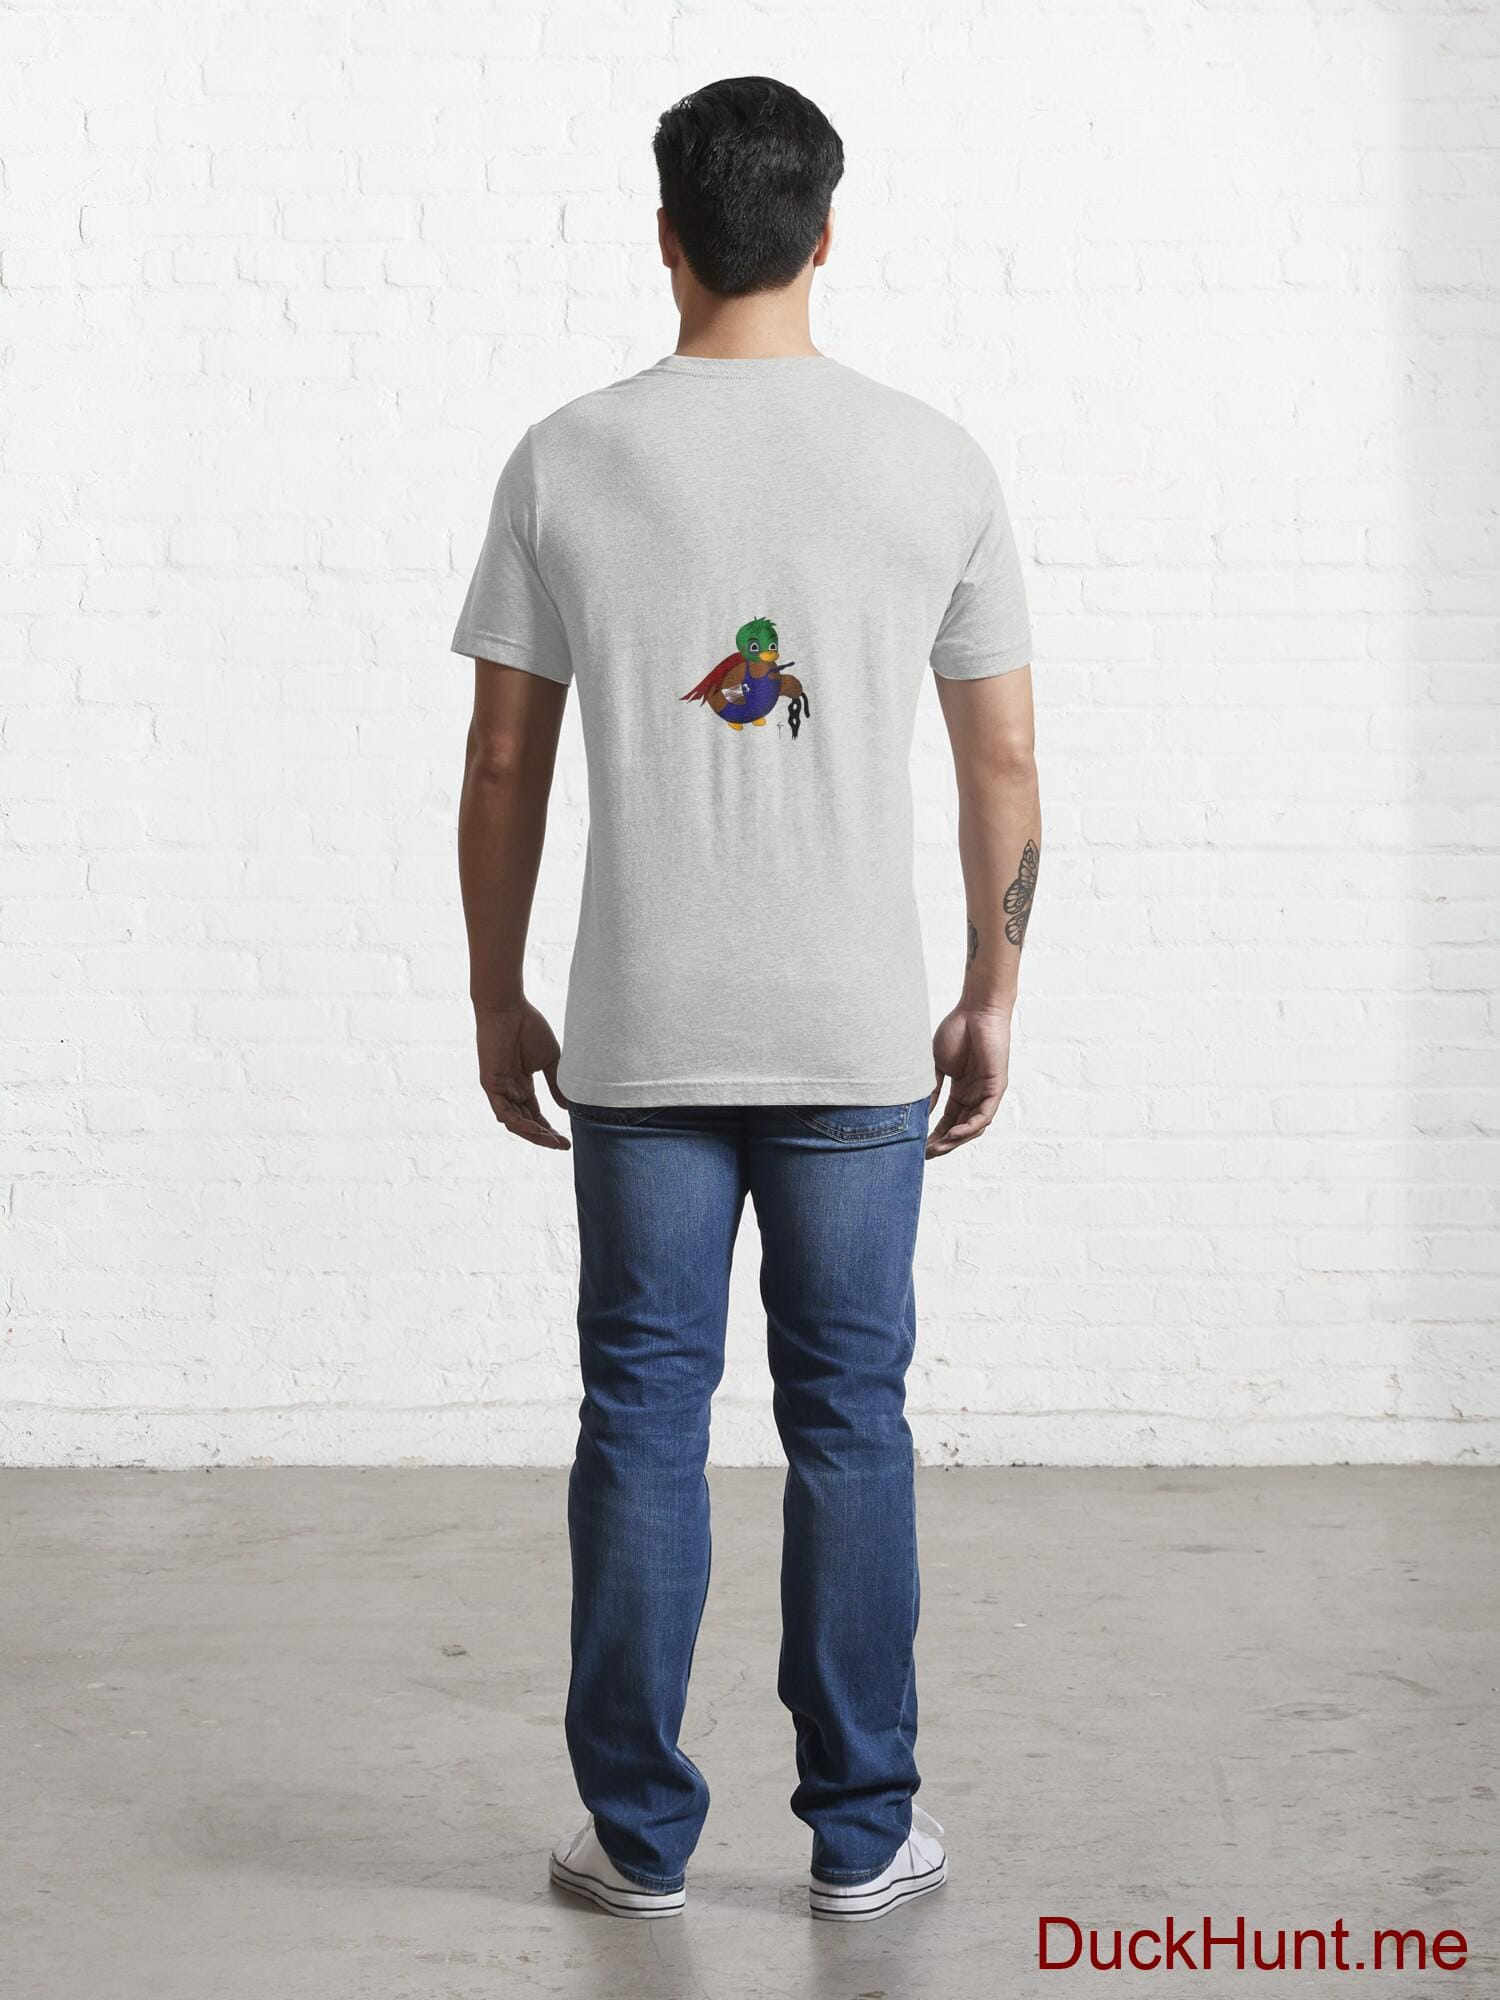 Dead DuckHunt Boss (smokeless) Light Grey Essential T-Shirt (Back printed) alternative image 3